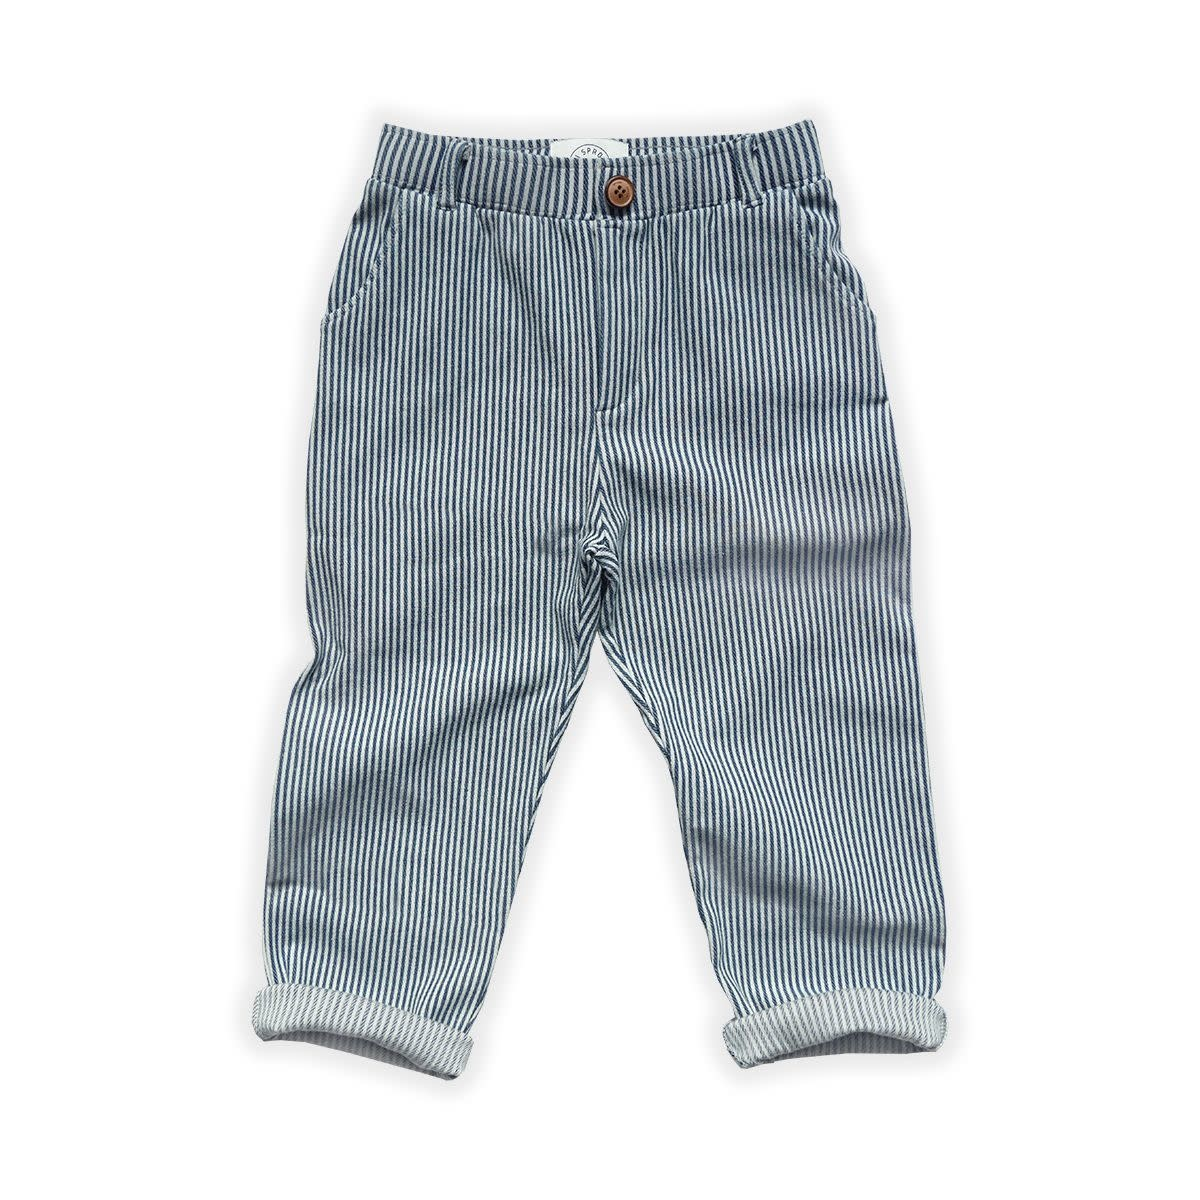 Sproet & Sprout Sproet&Sprout - Chino pants demin stripe